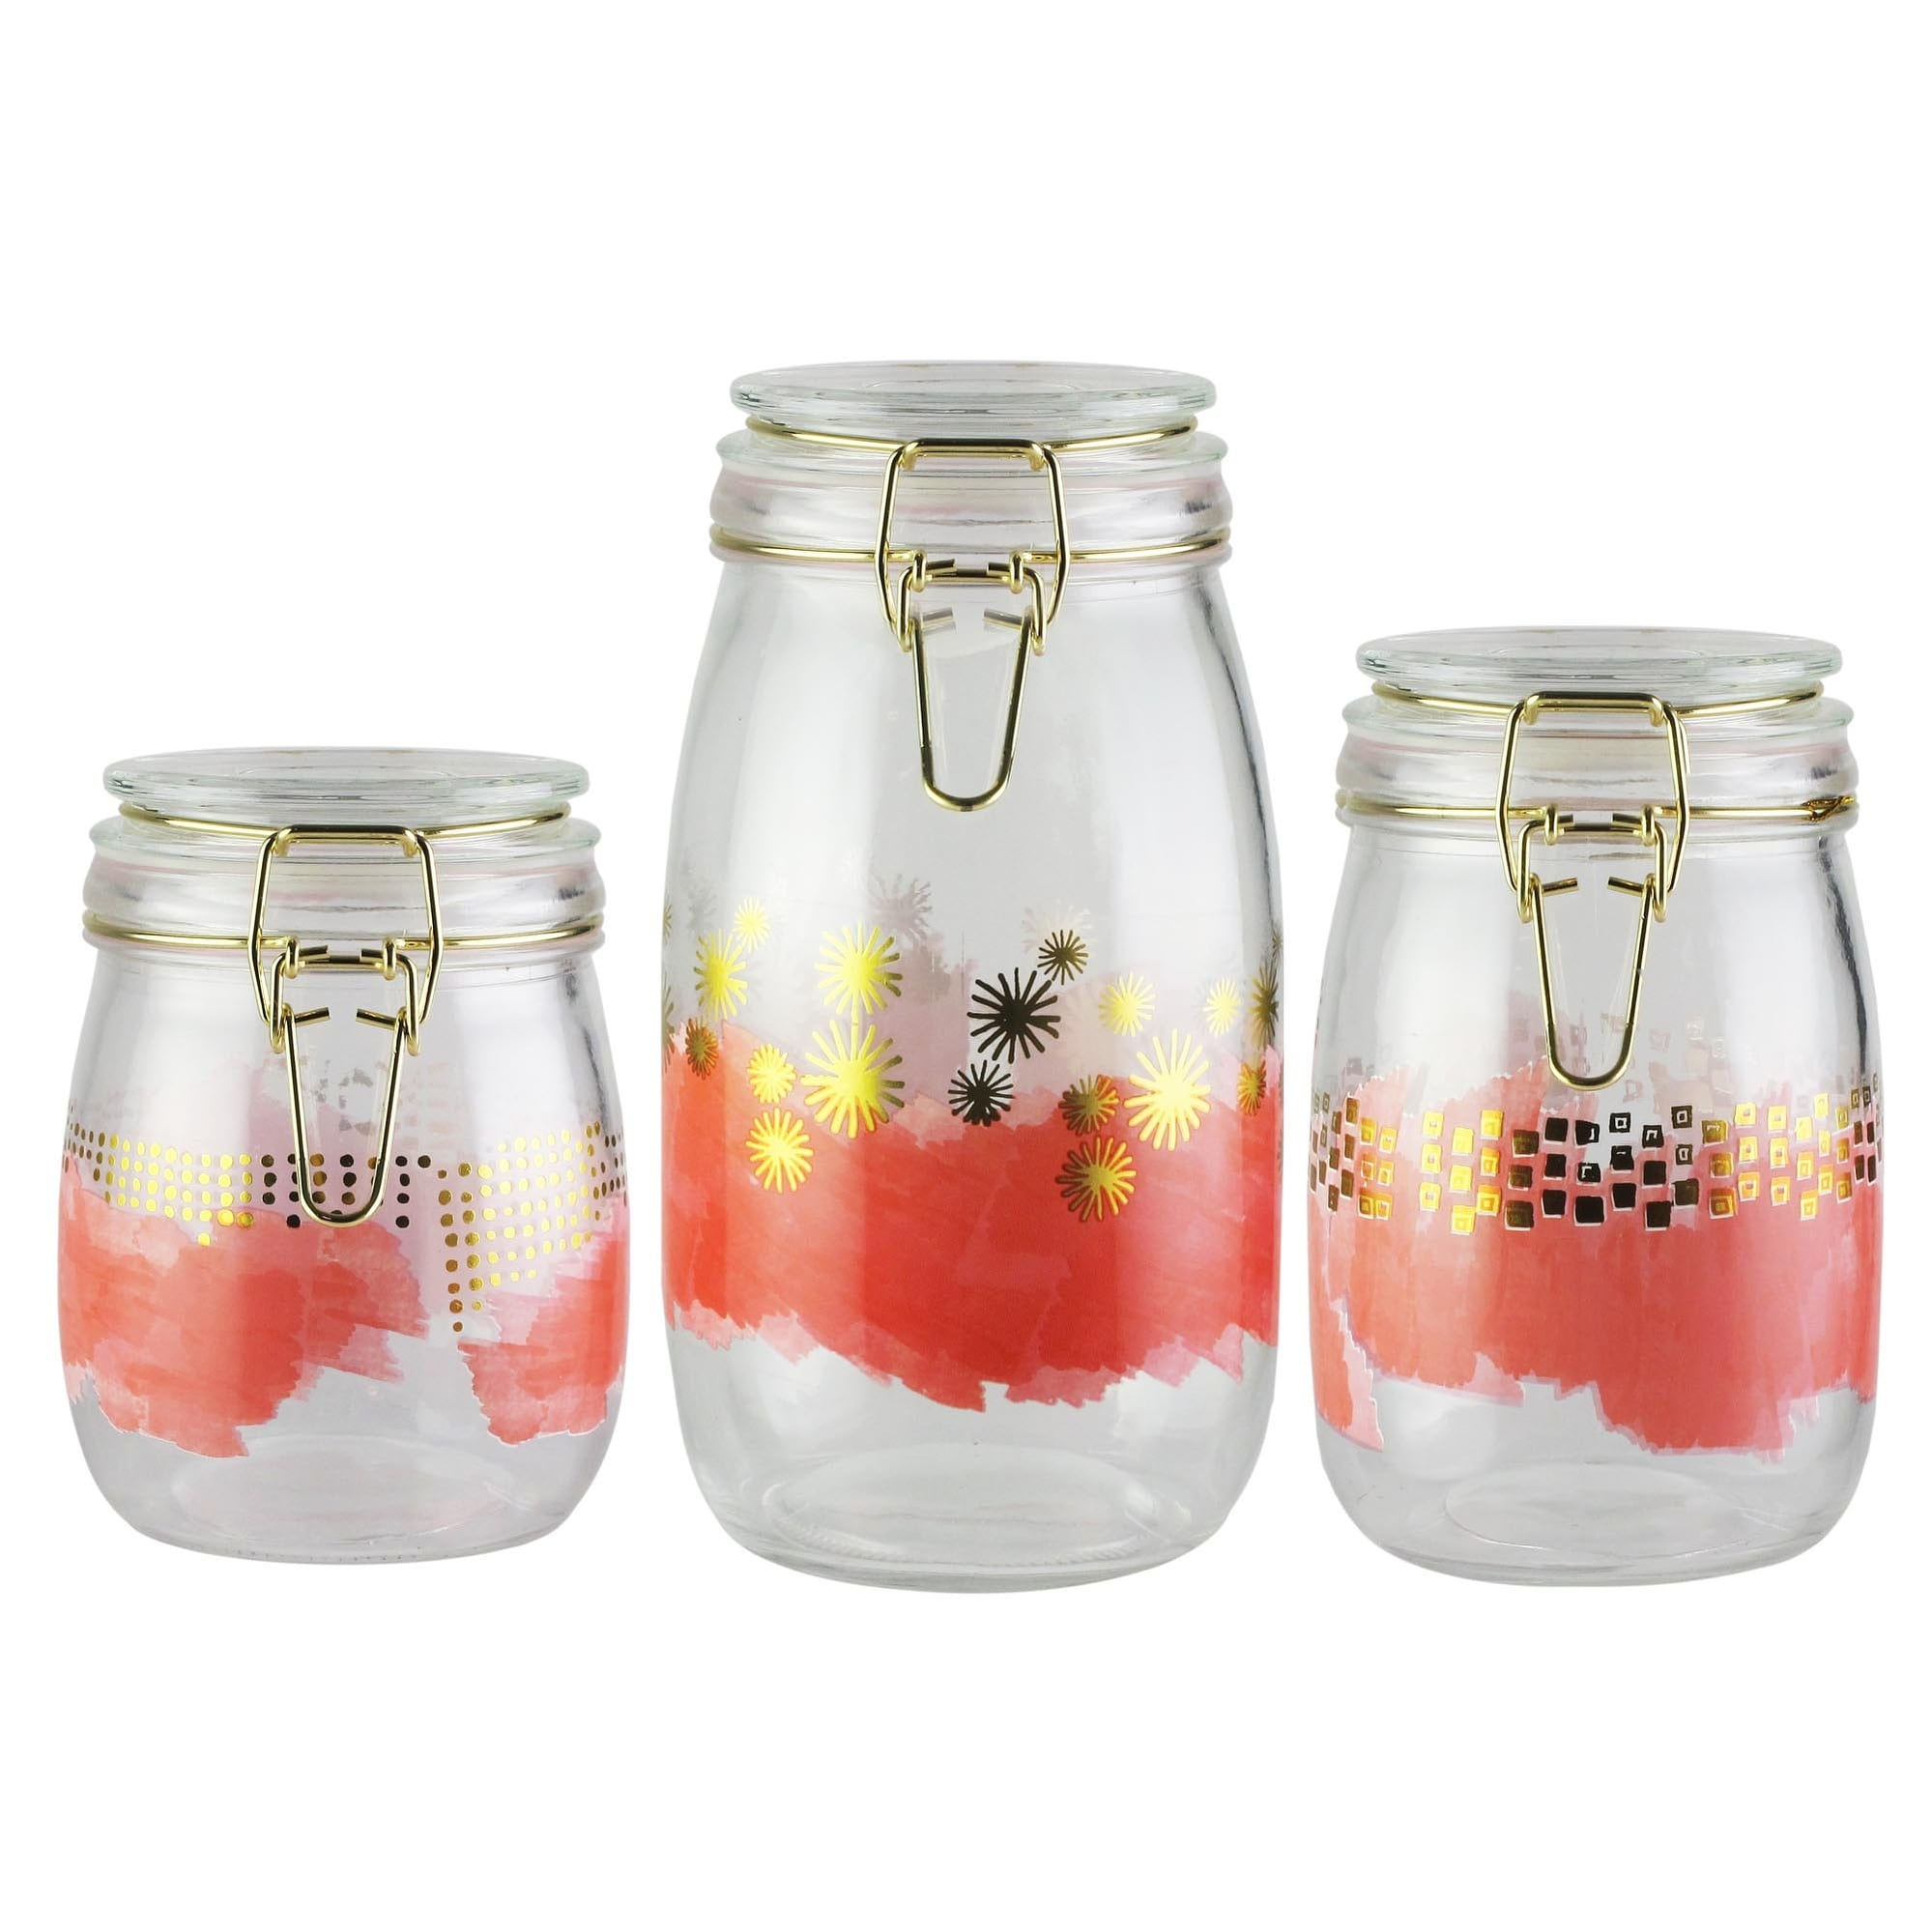 Buy Pink, Glass Kitchen Canisters Online At Overstock | Our ...